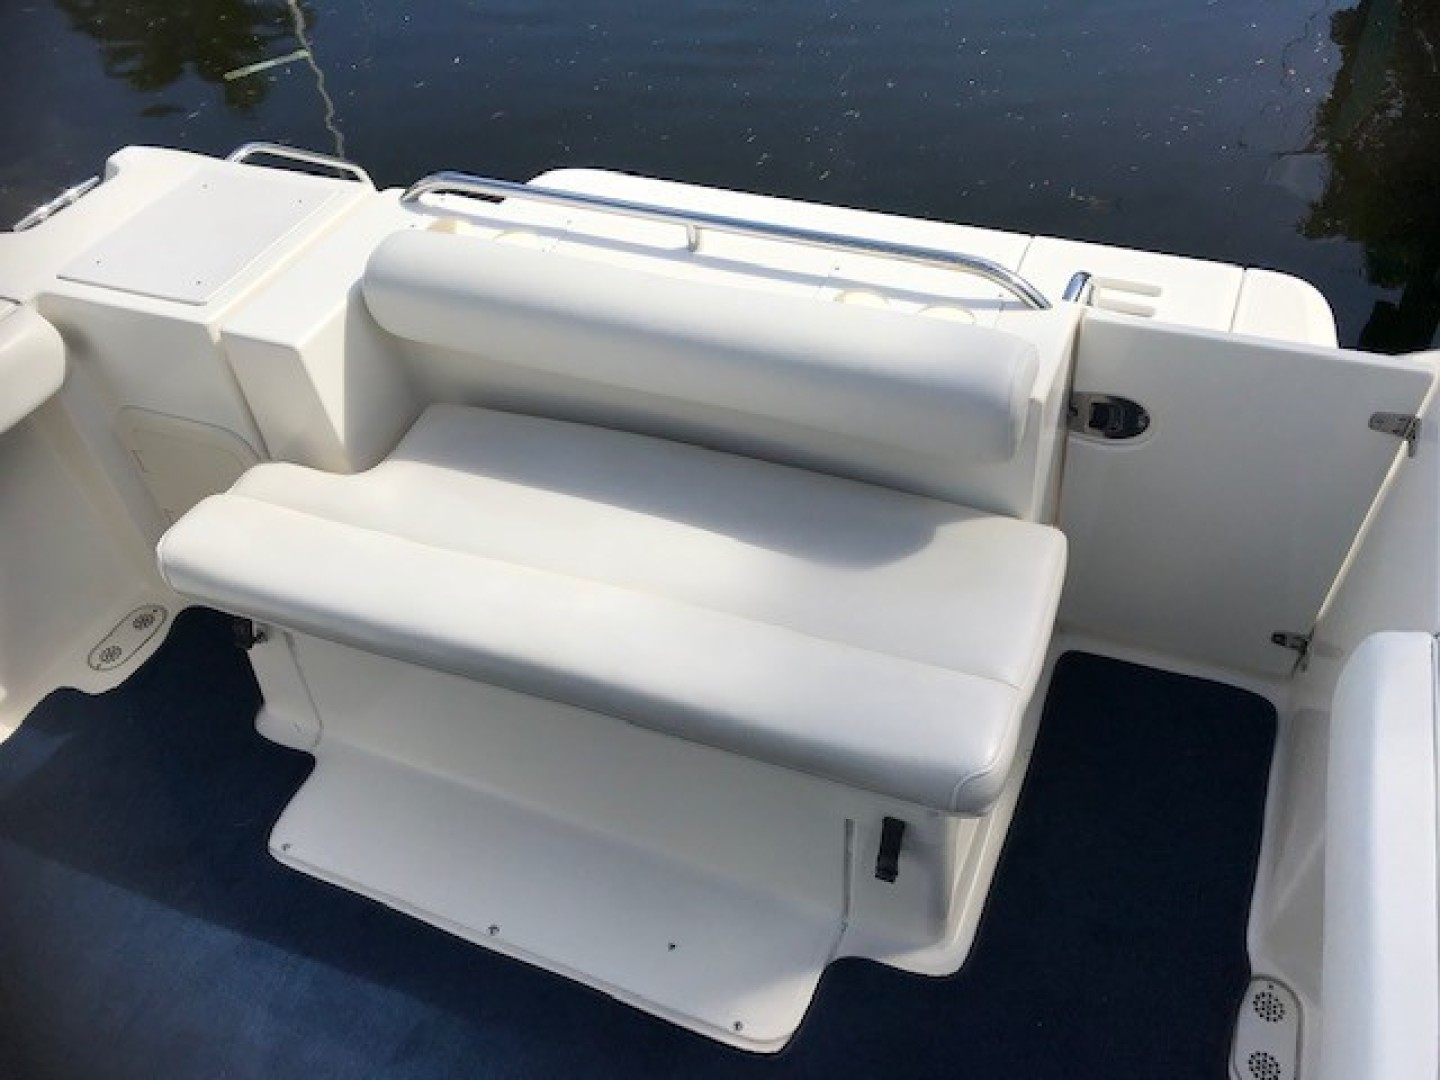 Pursuit 28 - Wired Up - Aft Seating with carpet liner